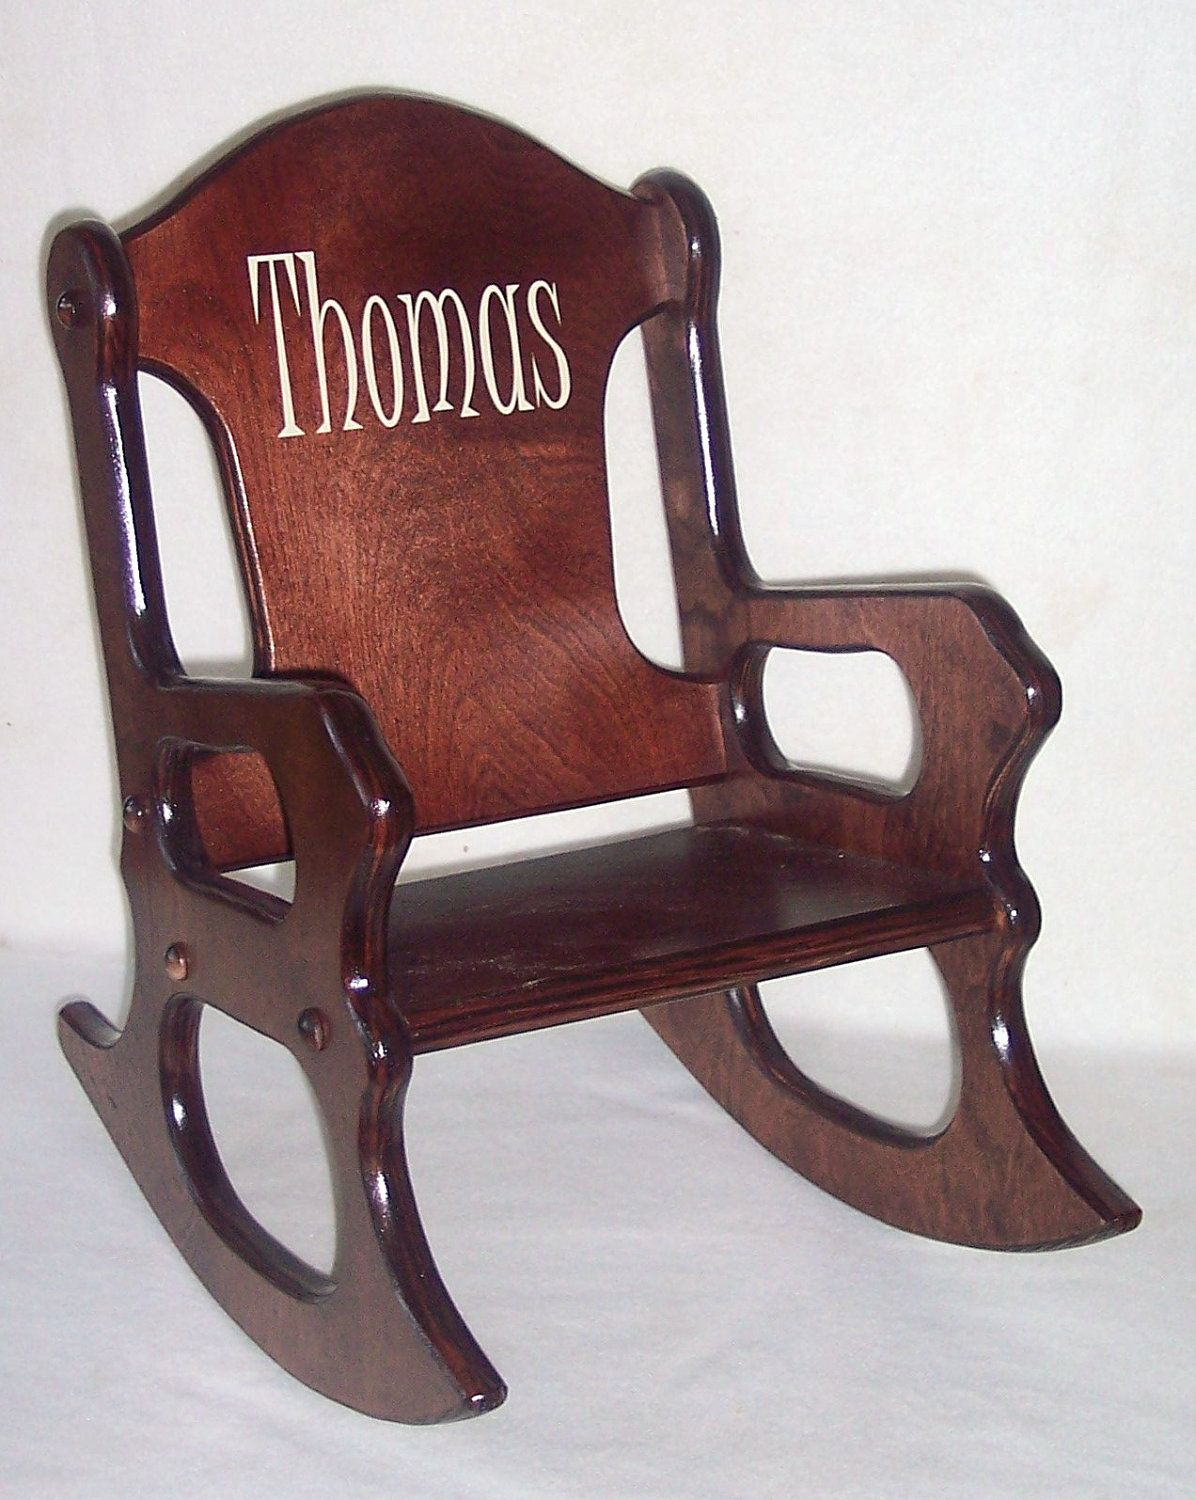 personalized rocking chair for toddlers lift walgreens wooden kids cherry finish 59 95 via etsy